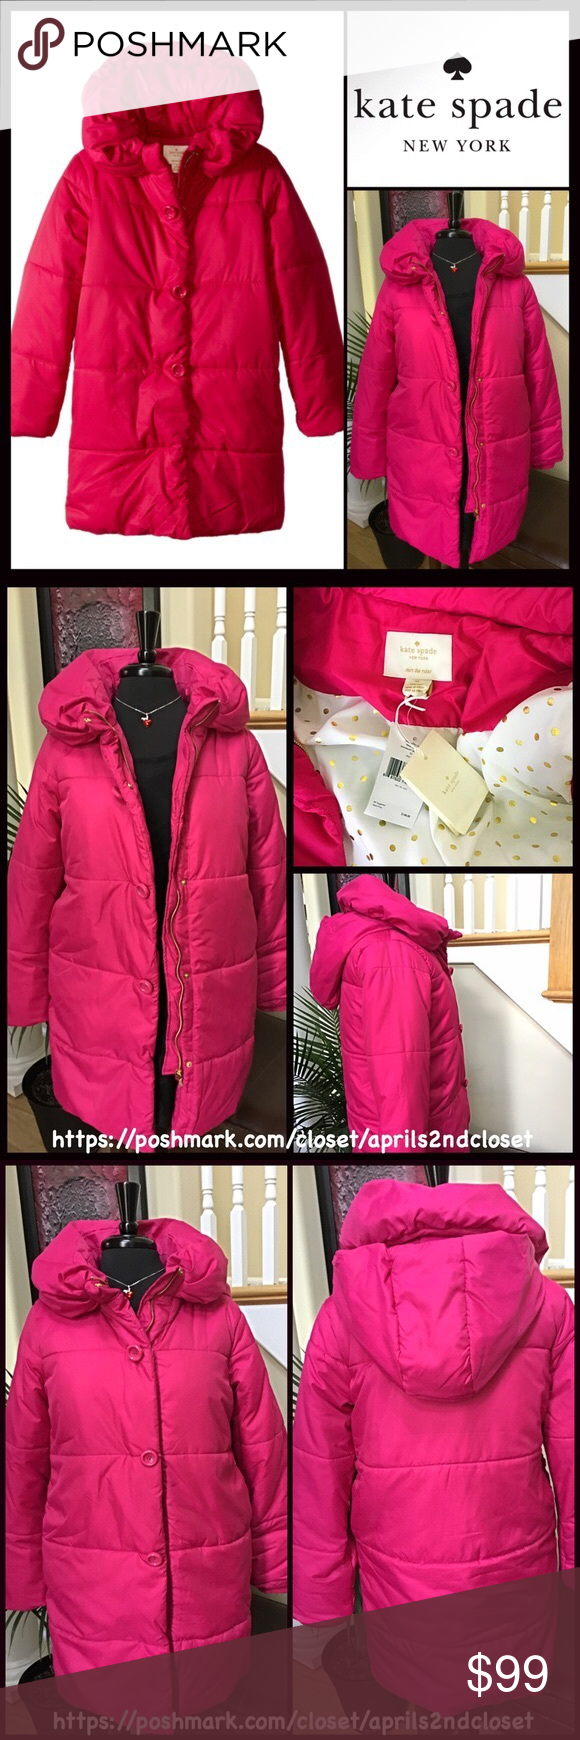 KATE SPADE GIRLS PUFFER COAT Hood 💟 NEW WITH TAGS💟   KATE SPADE PUFFER COAT Cold Weather JACKET   * Detachable hood & stand-up collar   * Allover quilting detail, ribbed knit trim & 2 side pockets   * Front zip & snap button closure   * Water resistant; Size XL = 16 (big girls) Item#KS99500  Fabric: 100% polyester shell  Color: Sweetheart pink  🚫No Trades🚫 ✅Offers Considered*✅  *Please use the blue 'offer' button to submit an offer kate spade Jackets & Coats Puffers